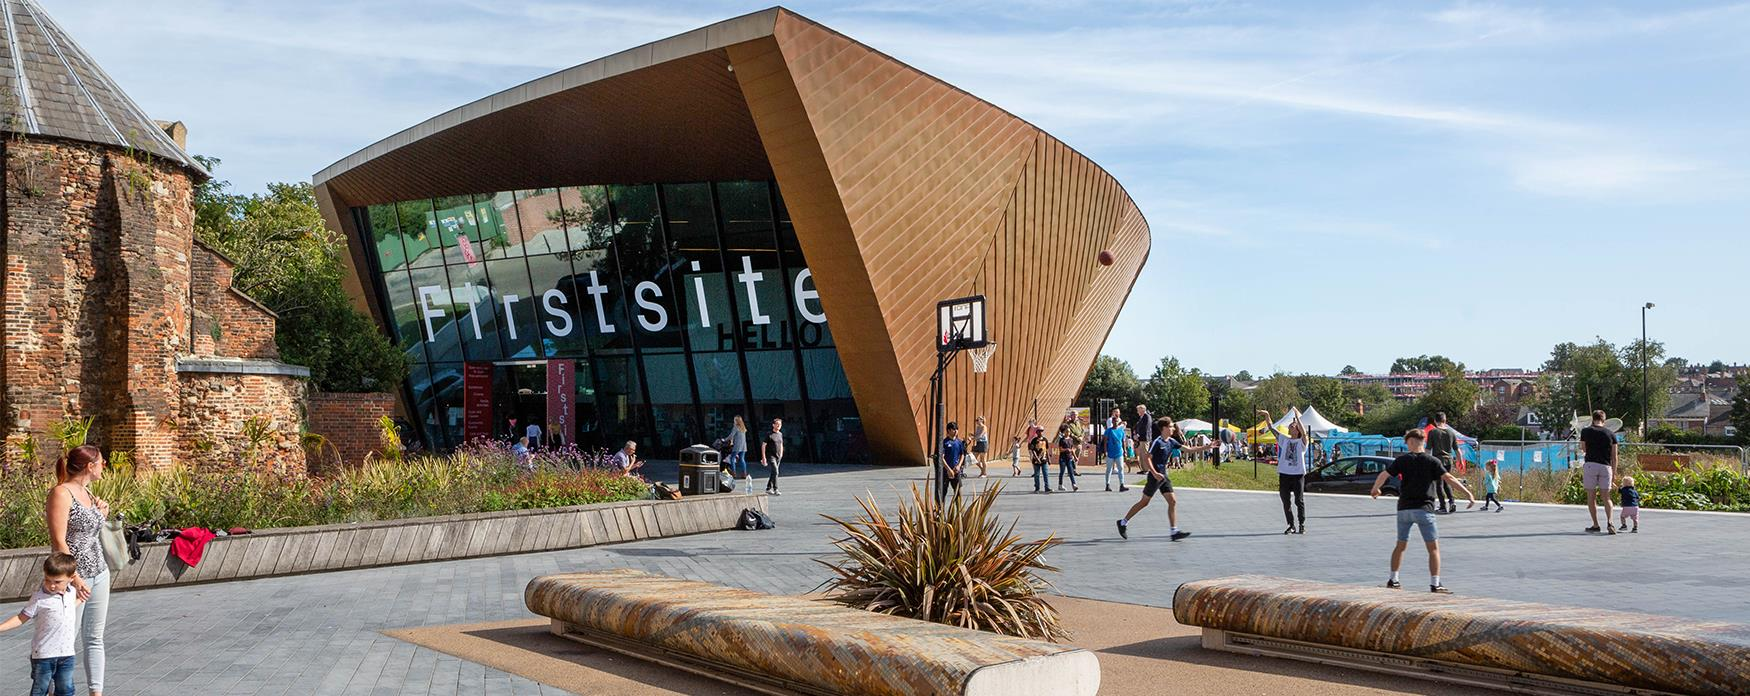 An exterior shot of Firstsite gallery with people in the foreground